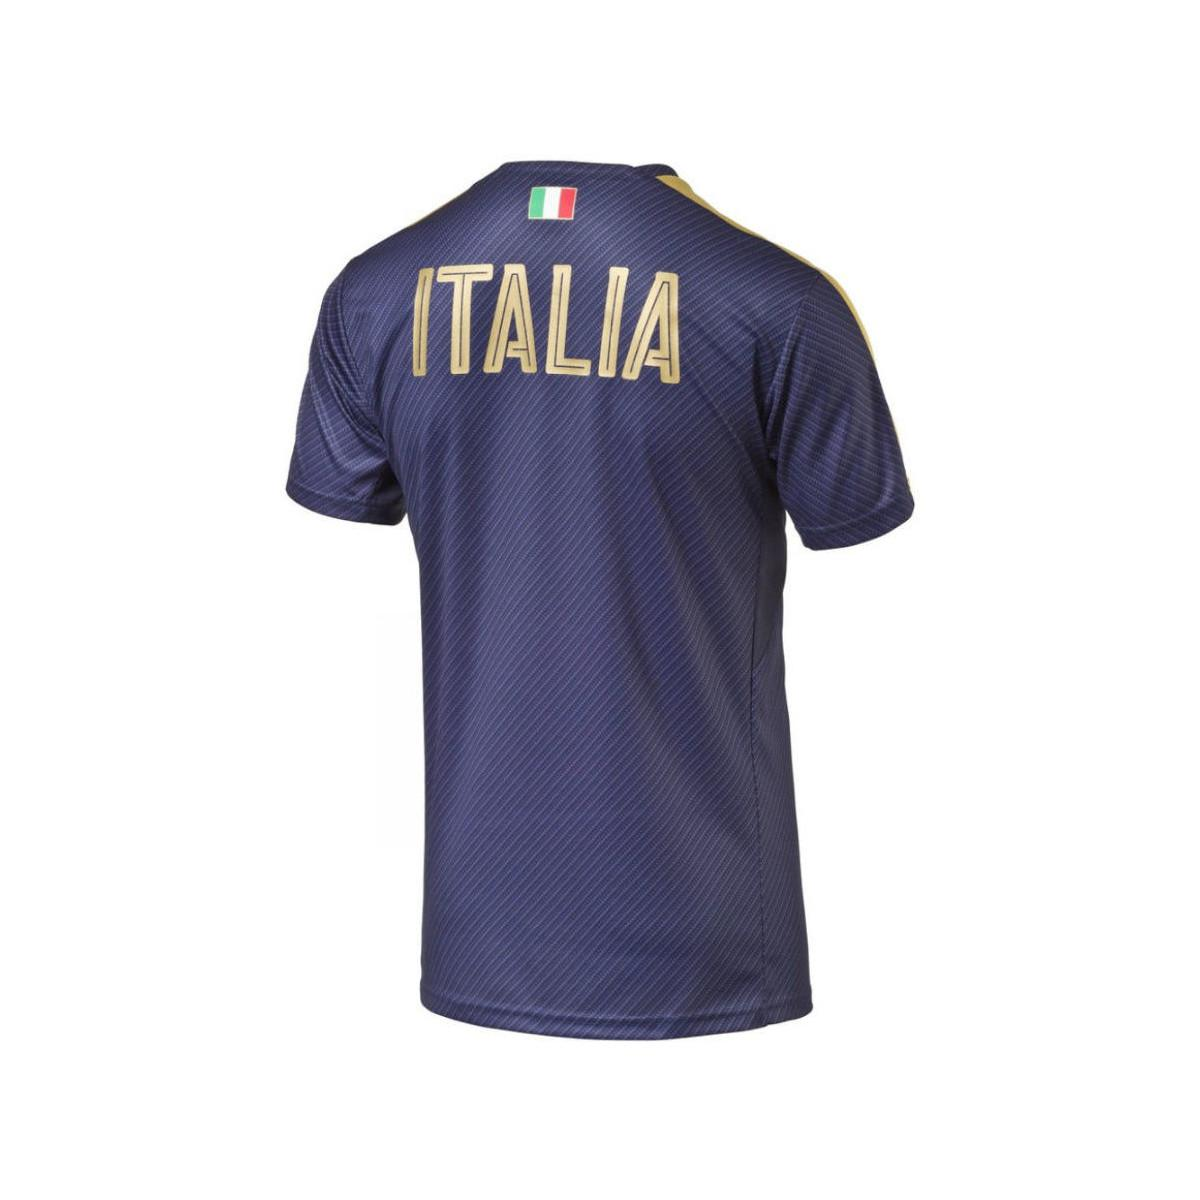 36ecb3390 Puma Italy 2006 Tribute Stadium Jersey (peacot)) - Kids Women s In ...